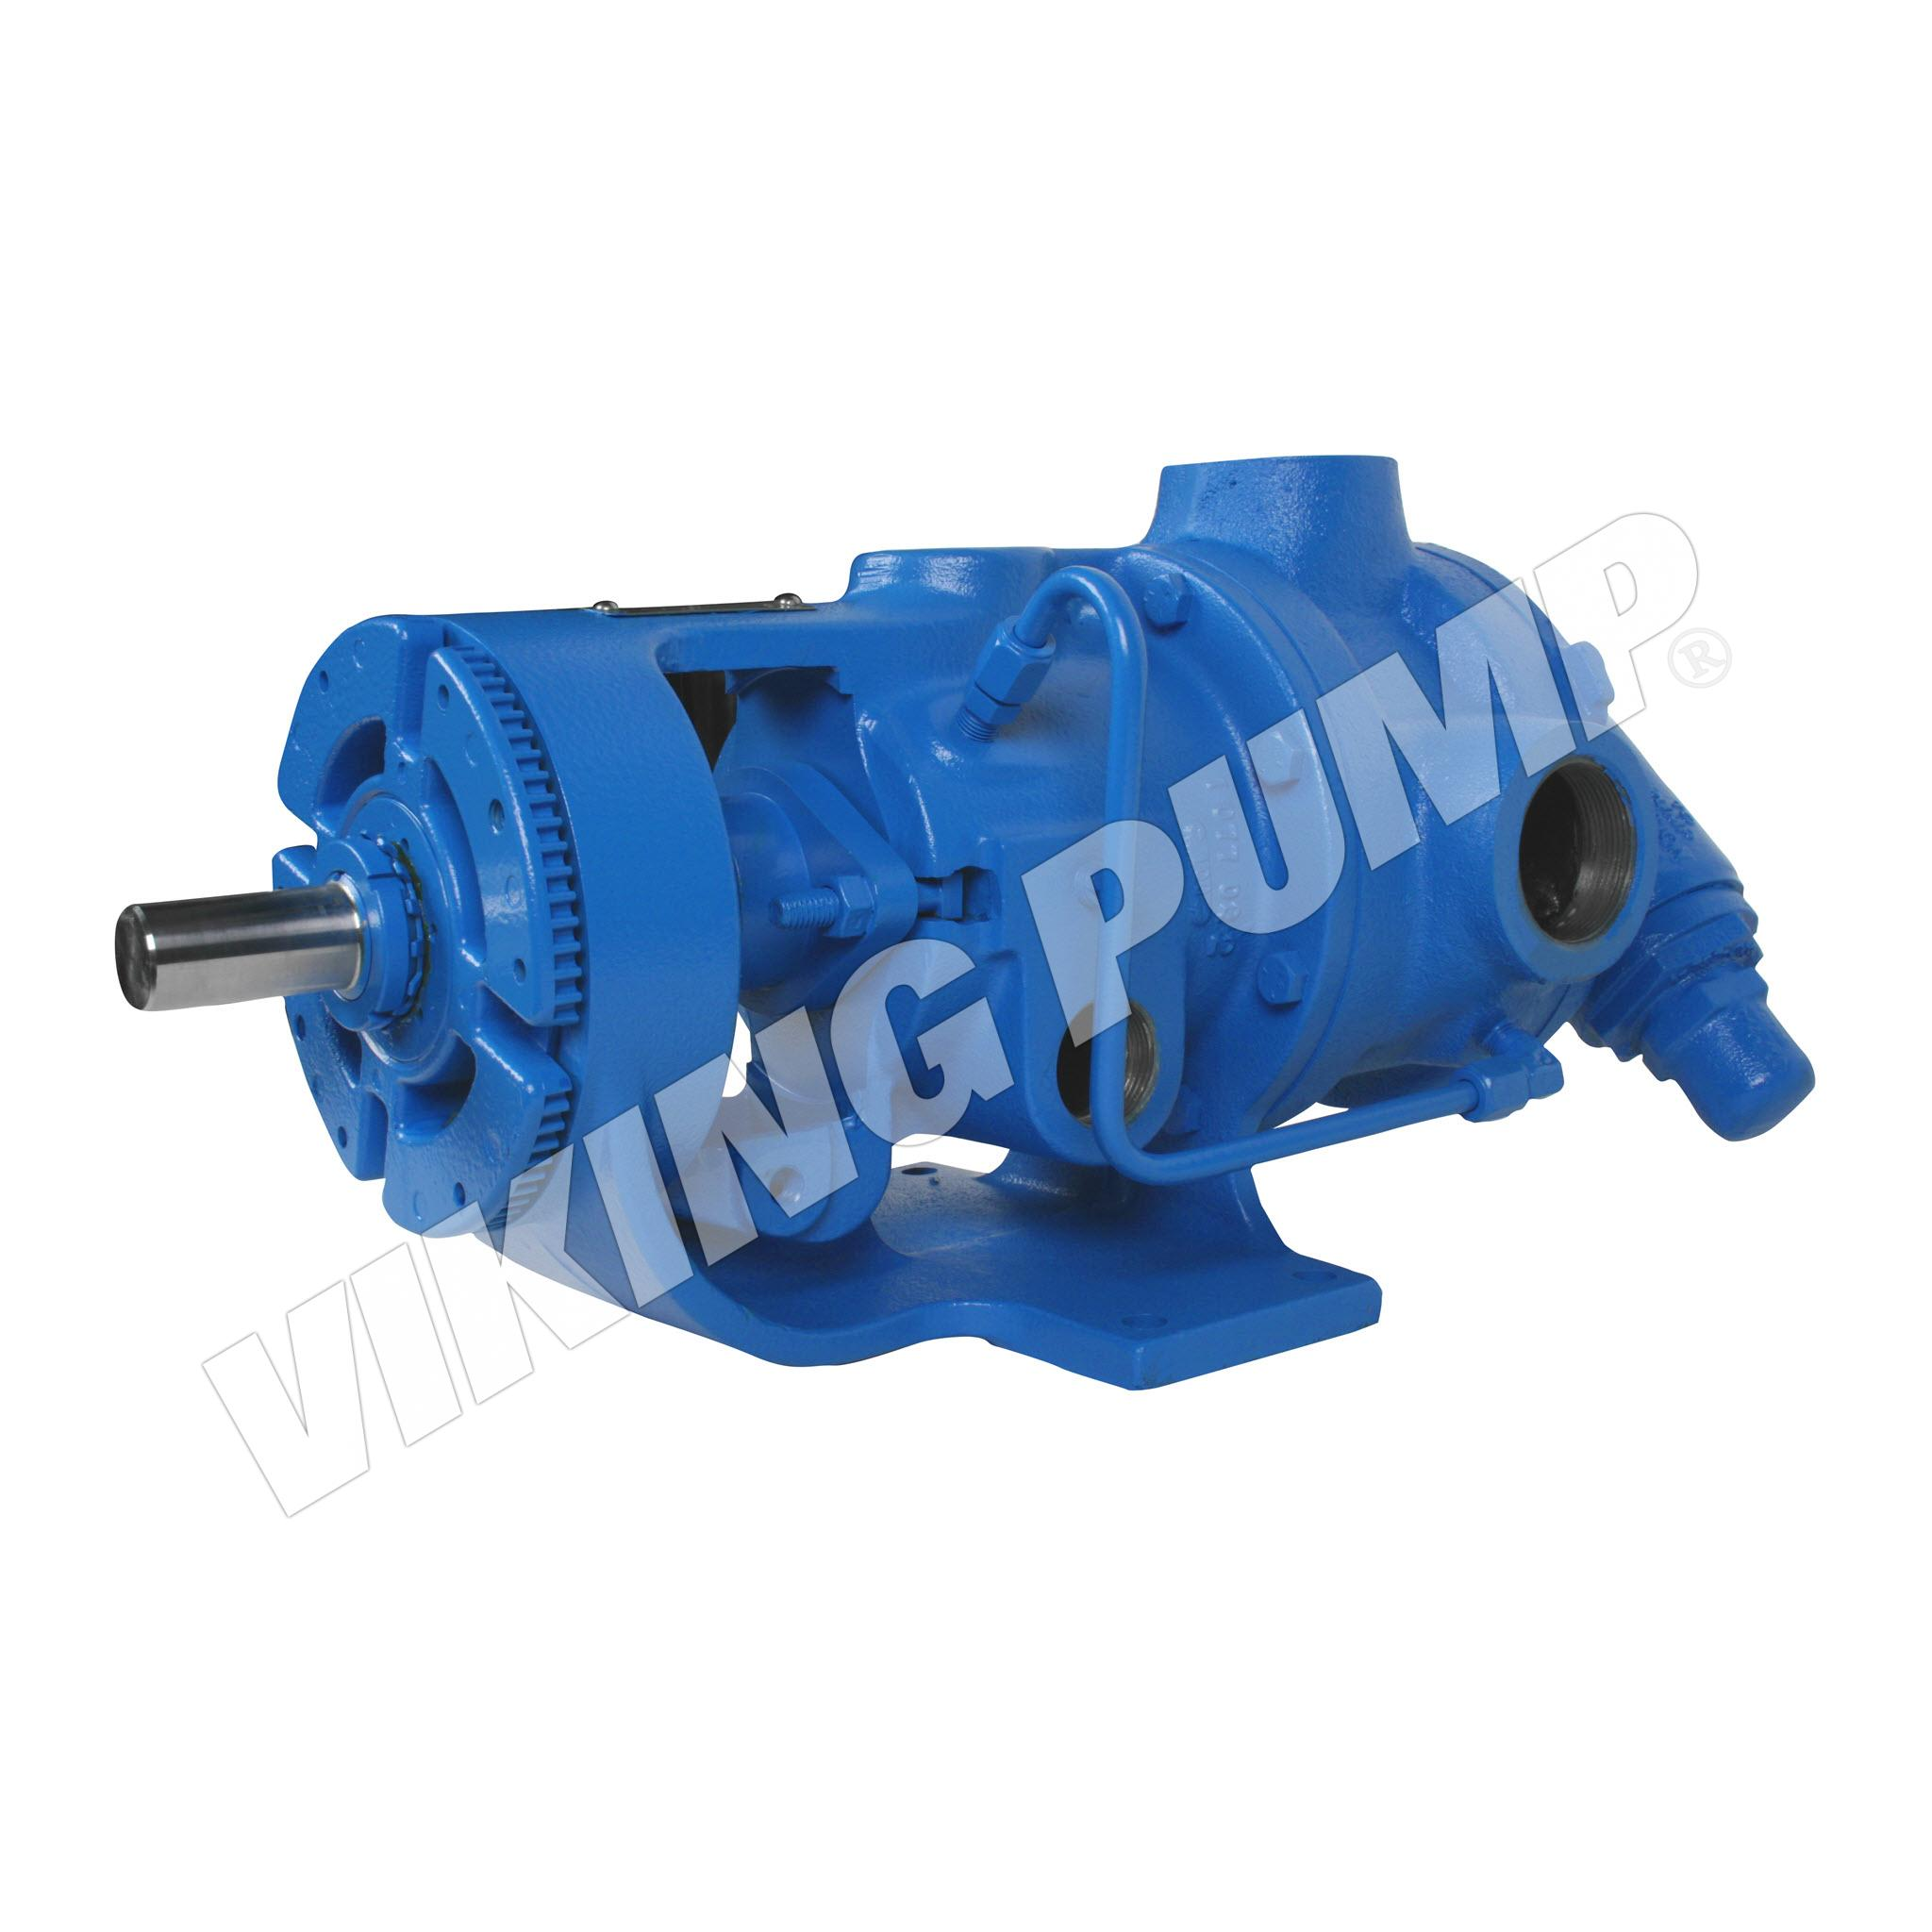 Model KK4226A, Foot Mounted, Mechanical Seal, Relief Valve Pump